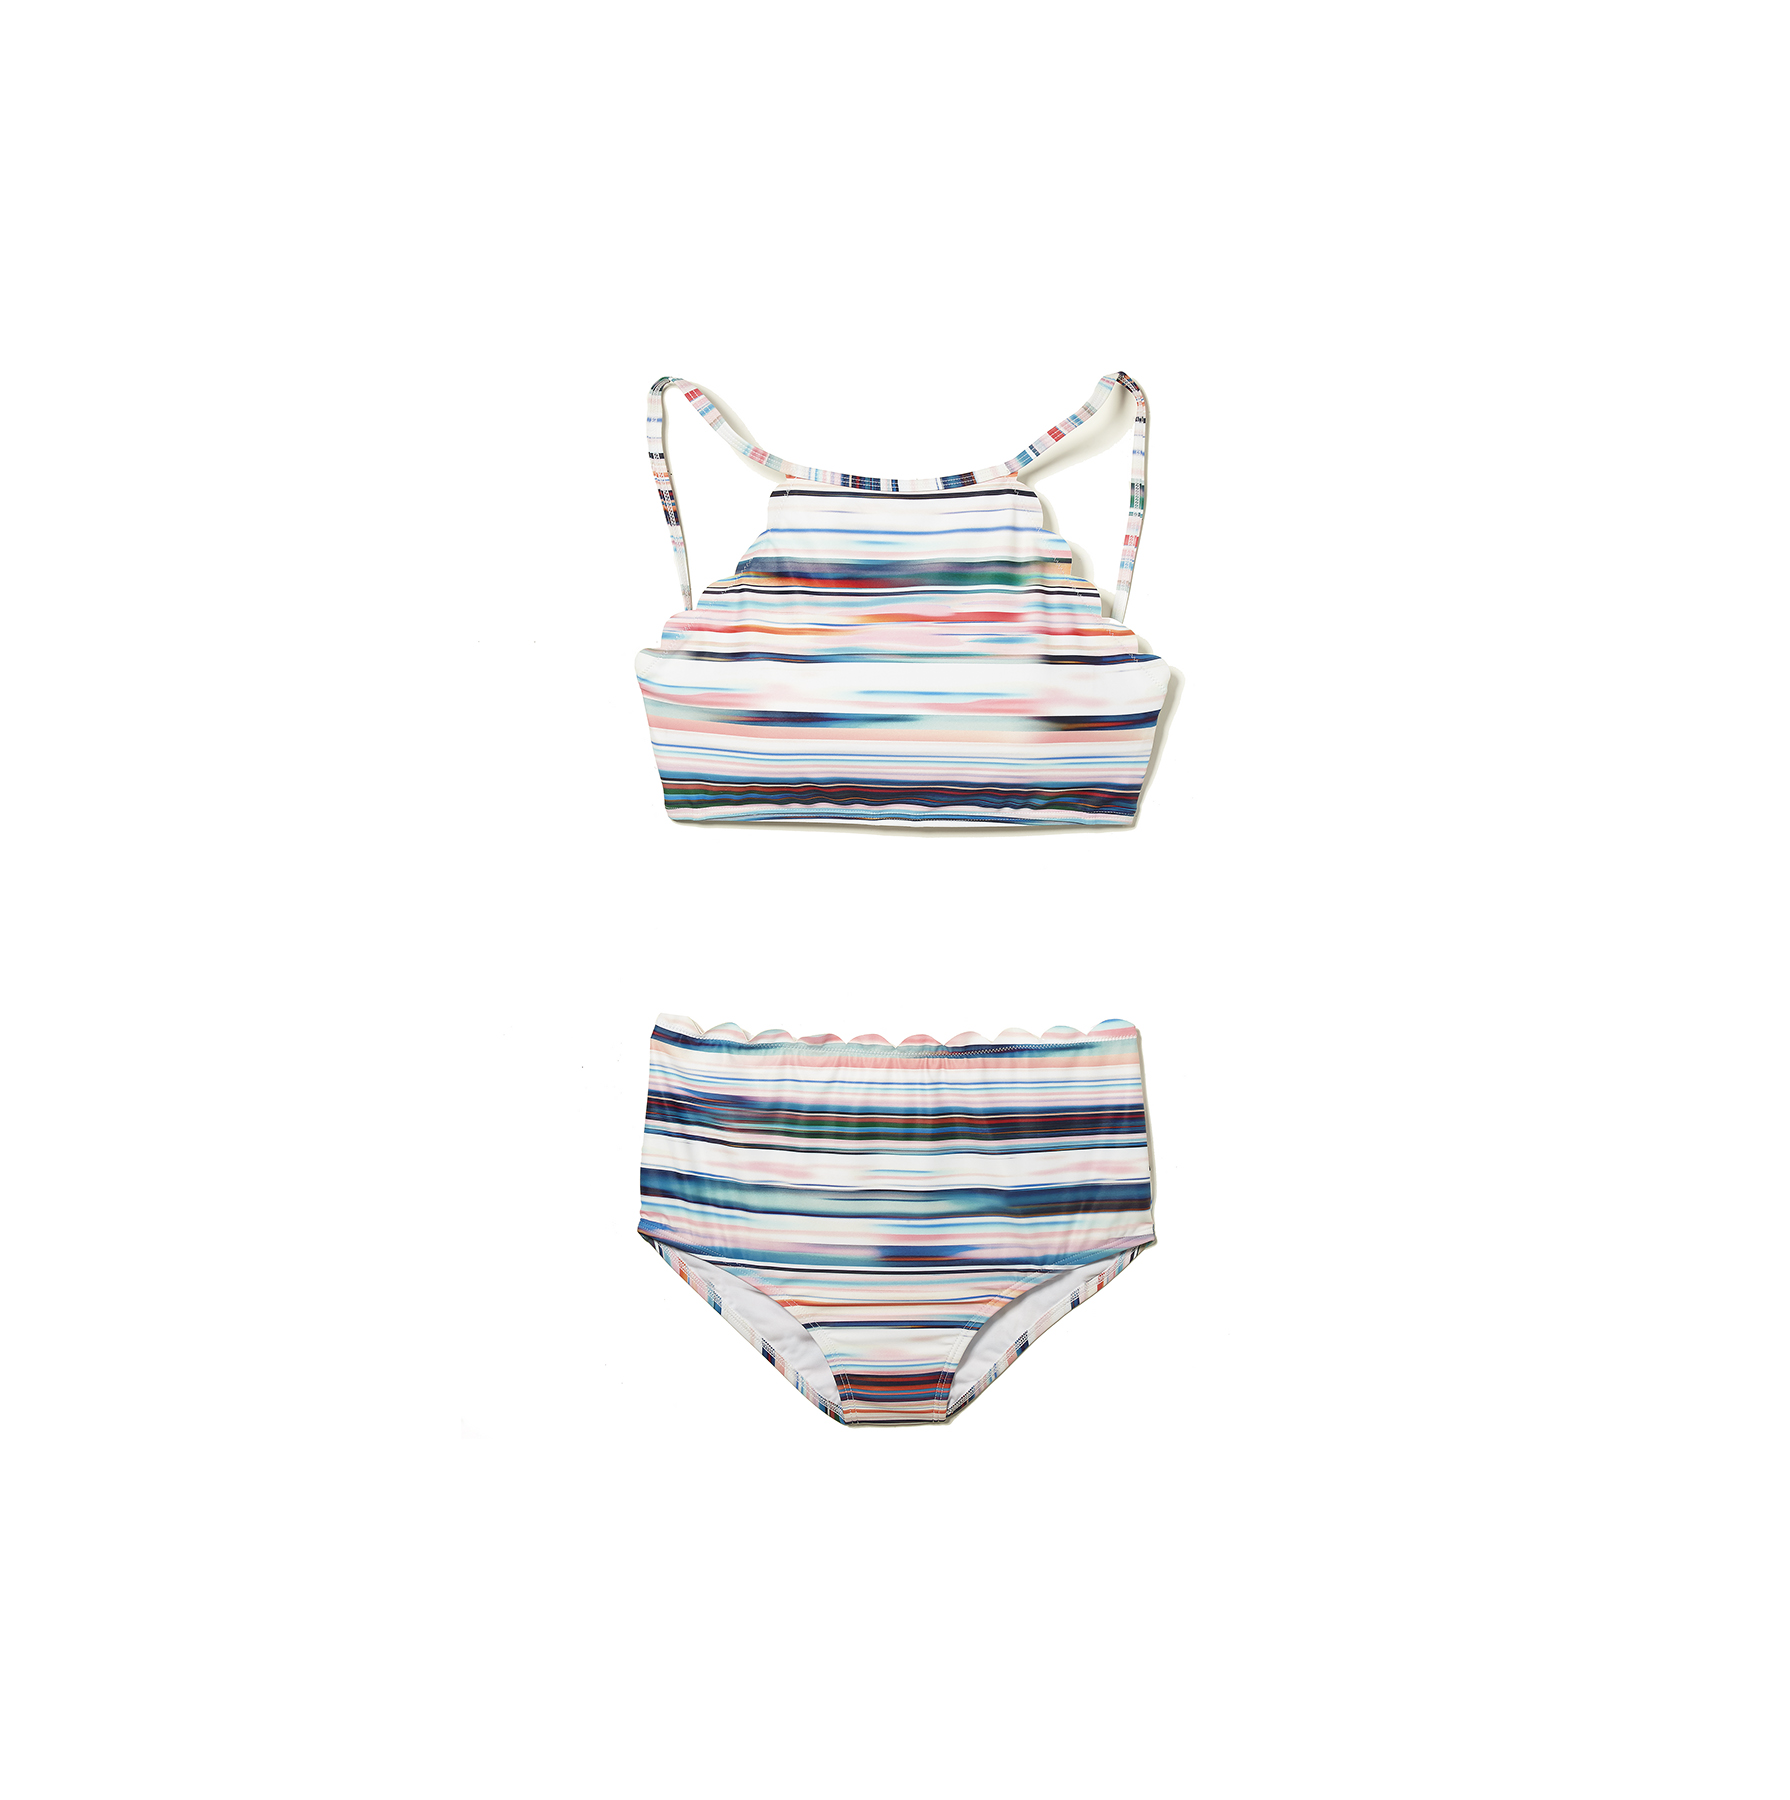 10 Plus-Size Bathing Suits You'll Love